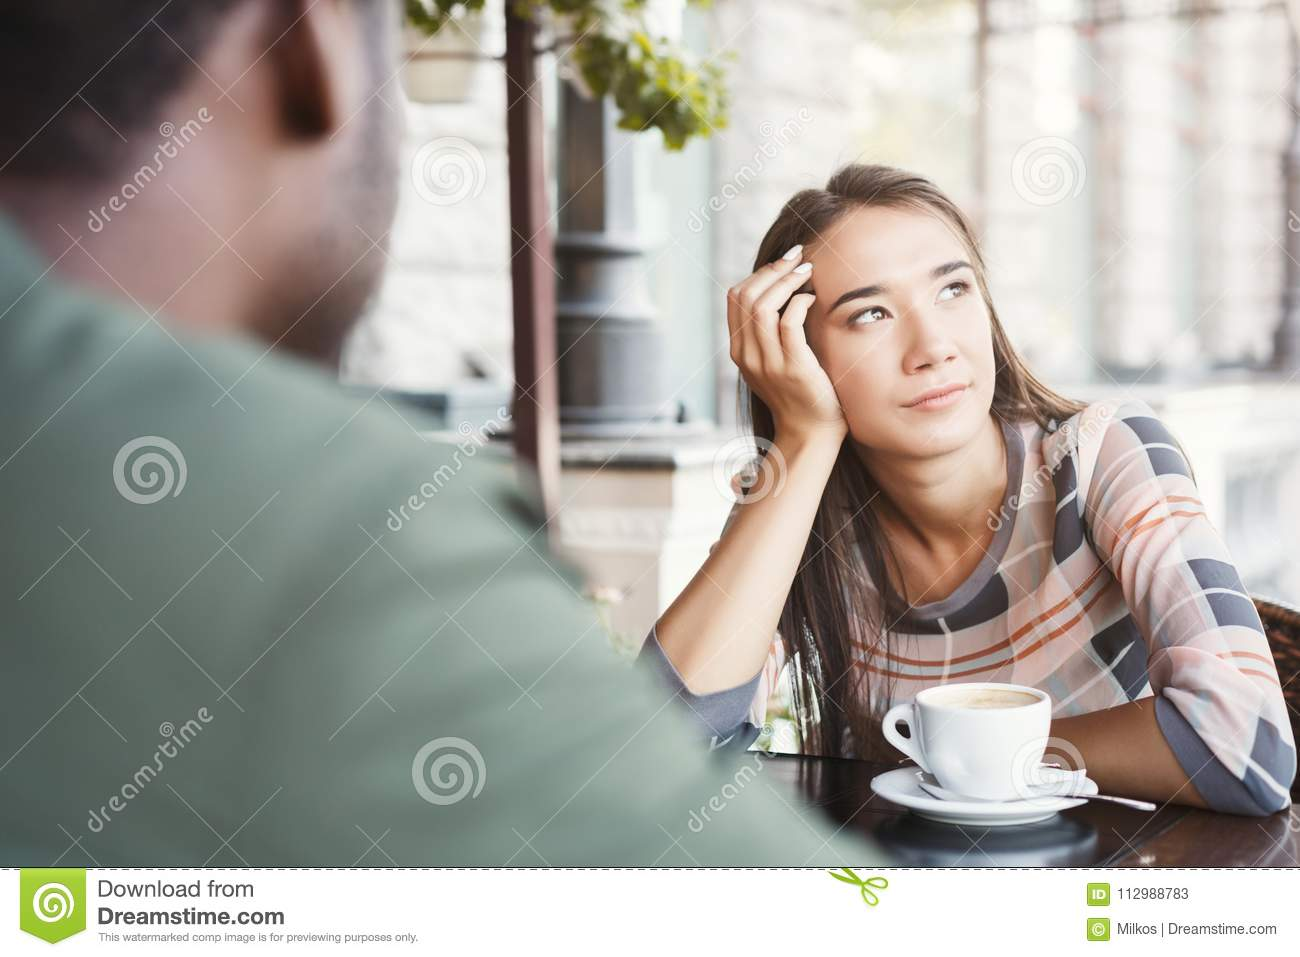 Young bored girl drinking coffee on date at a cafe